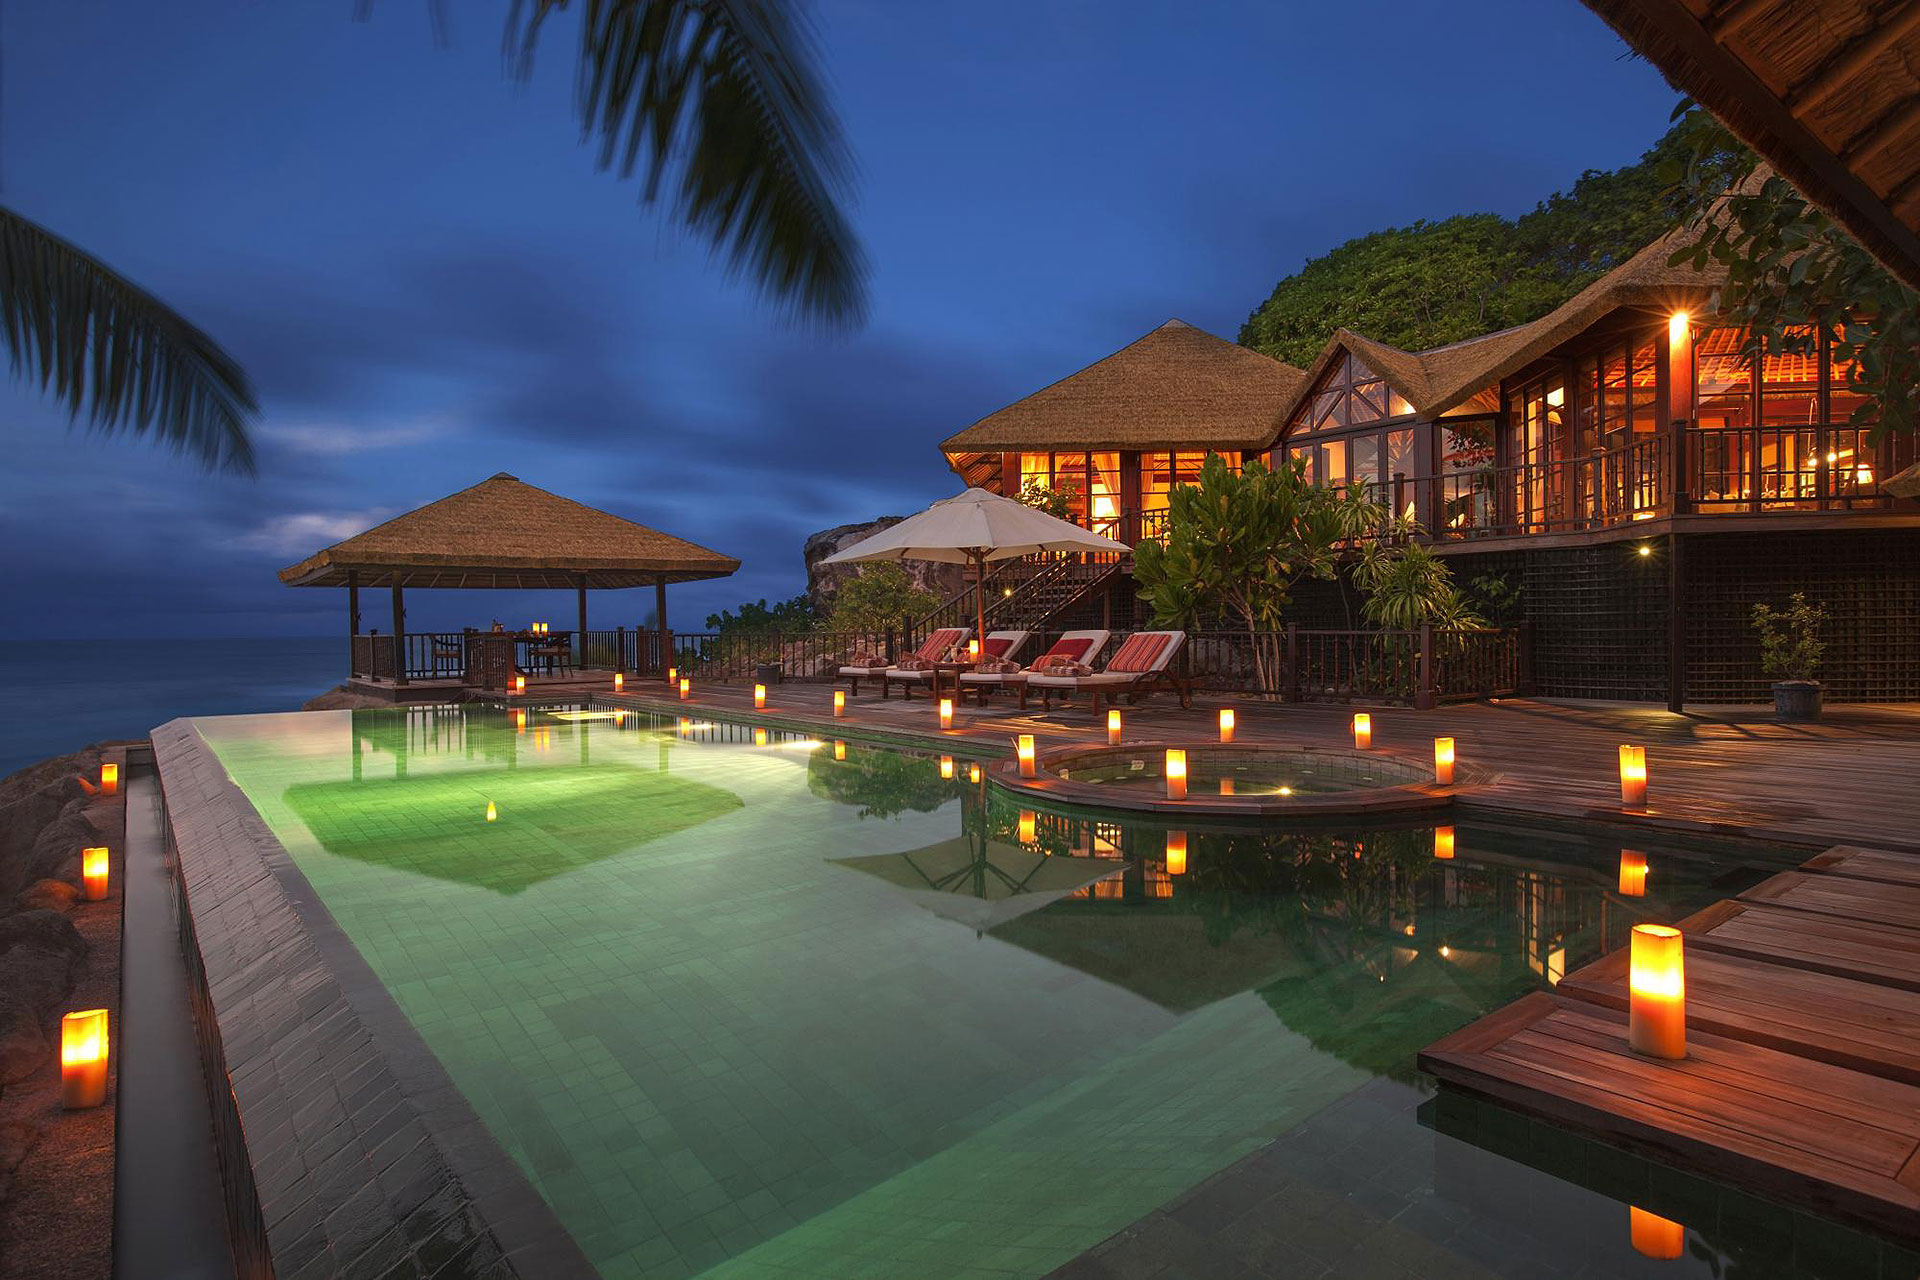 Fregate Island Private; Courtesy of Fregate Island Private